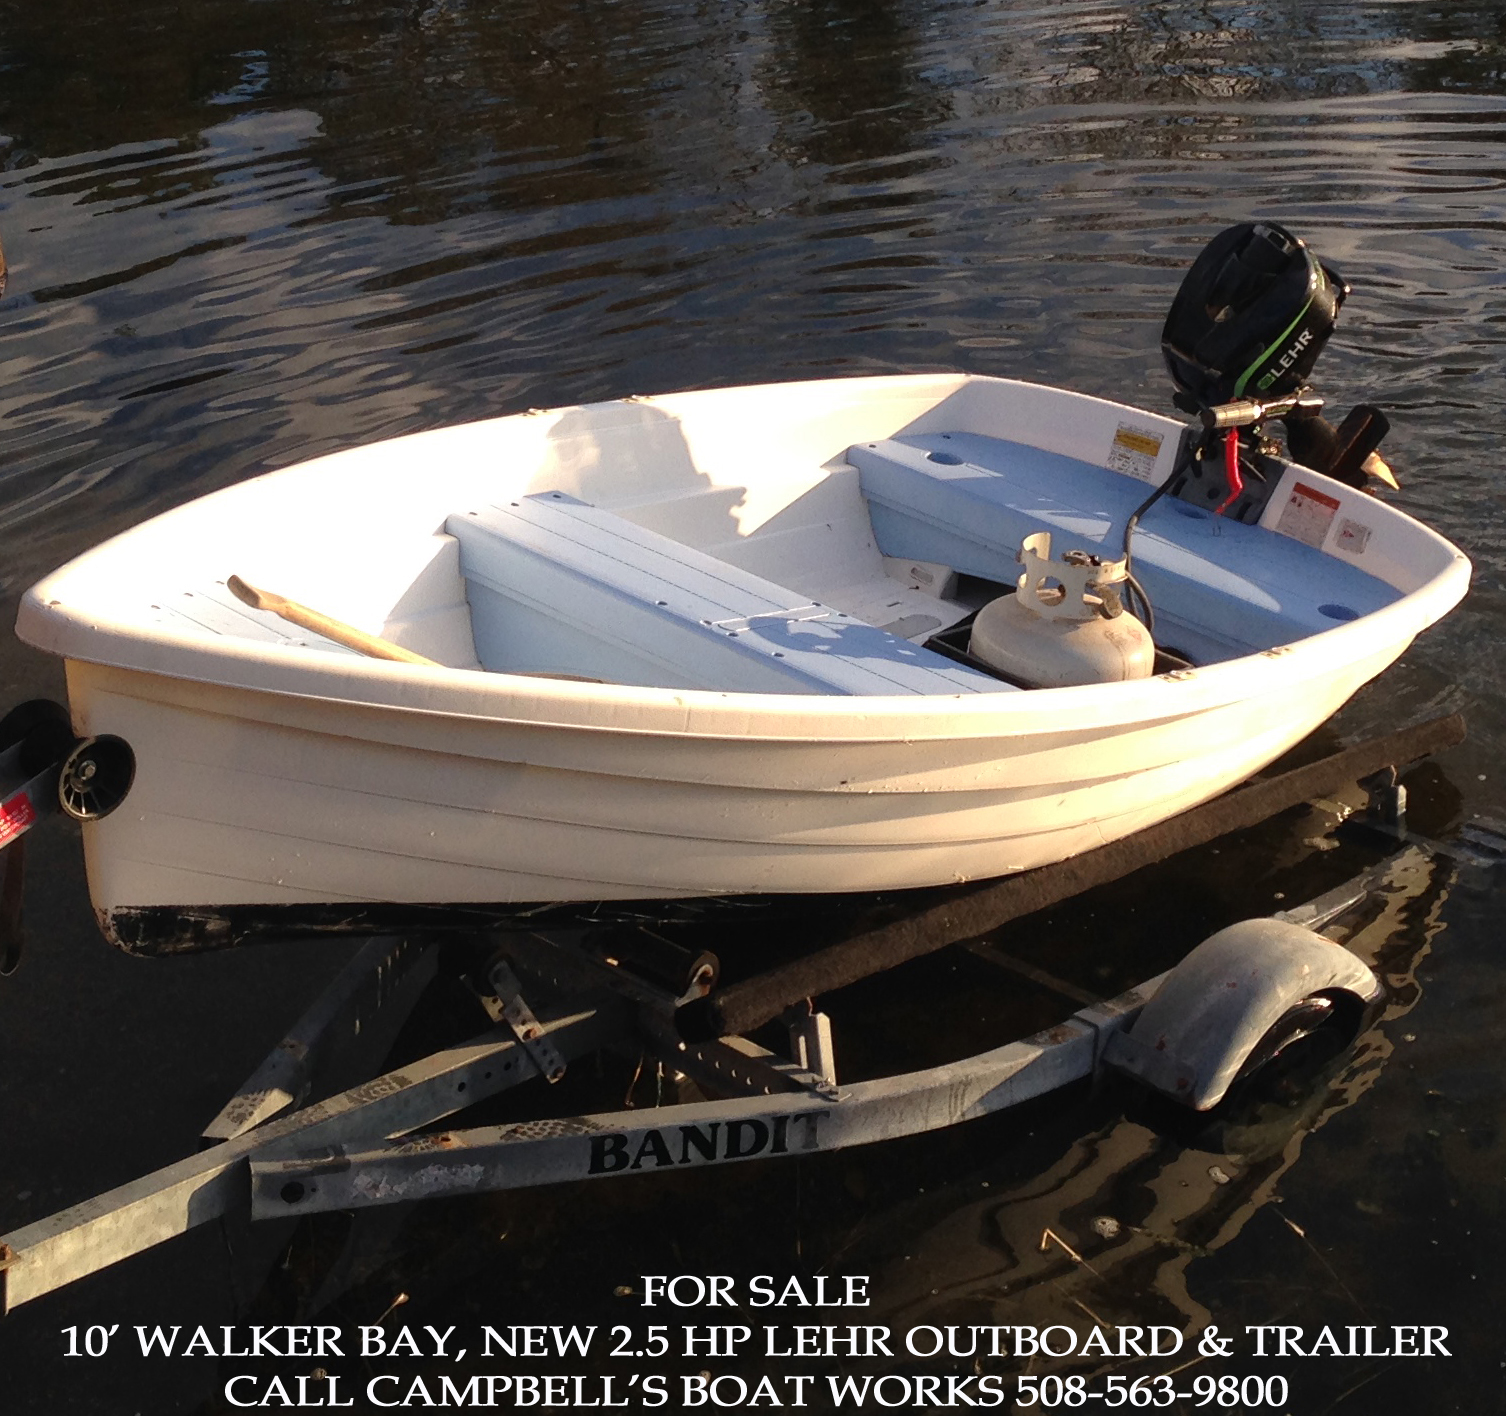 Walker Bay Boat, New 2.5 hp Propane Outboard, and Trailer Package For Sale and Ready for the 2014 Boating Season! Call us for more information or to come view this boat. 508-563-9800